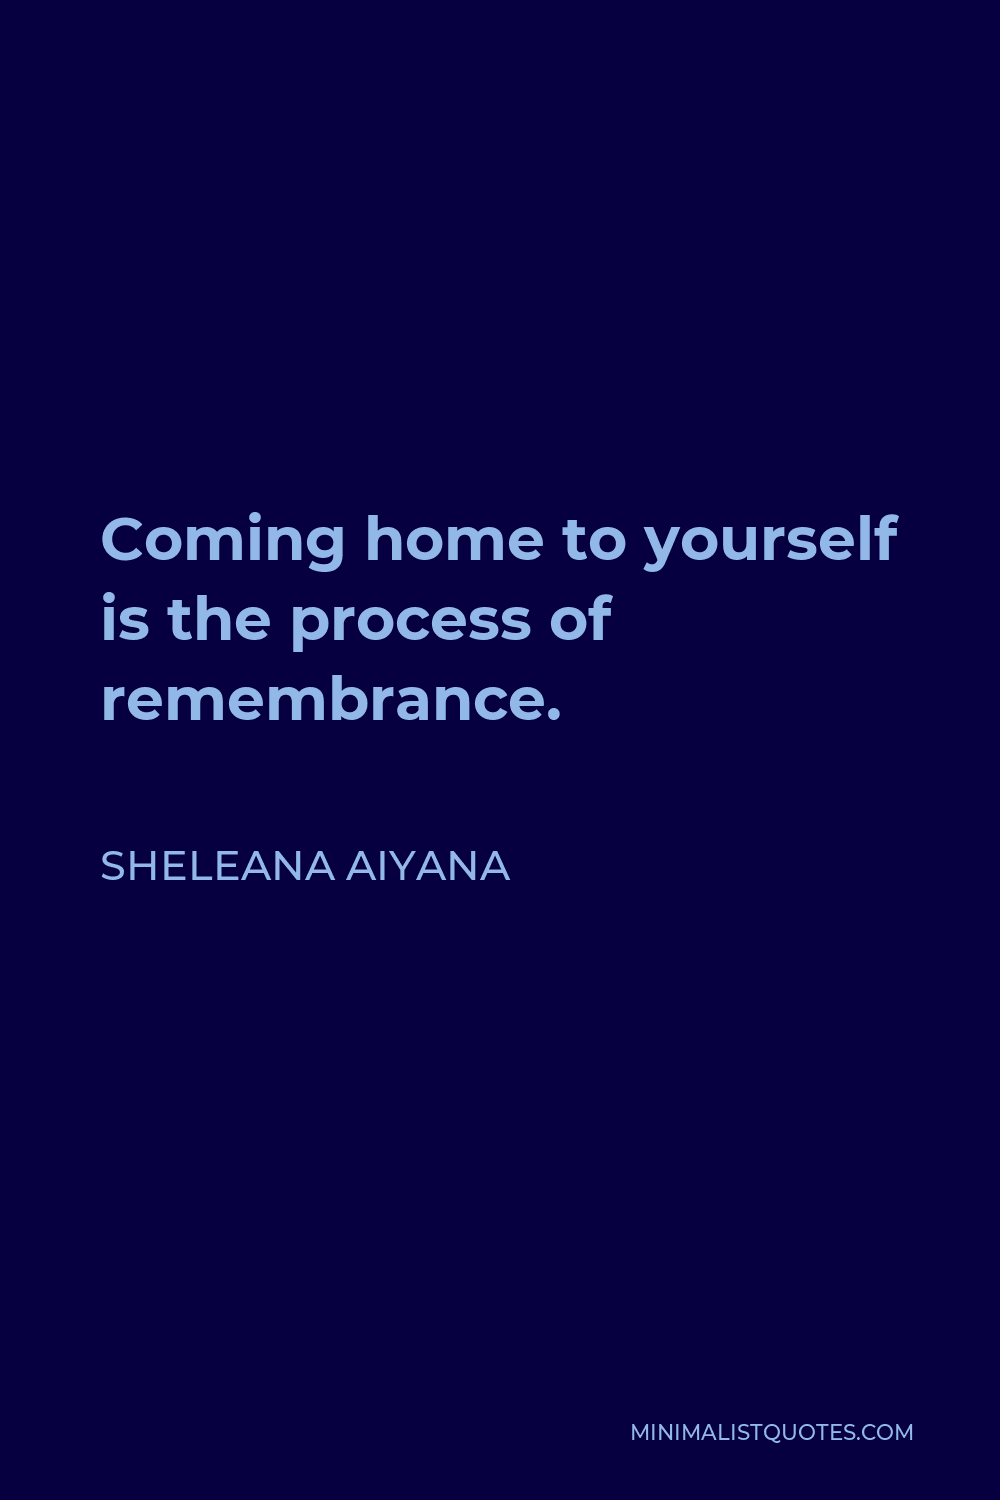 Sheleana Aiyana Quote - Coming home to yourself is the process of remembrance.